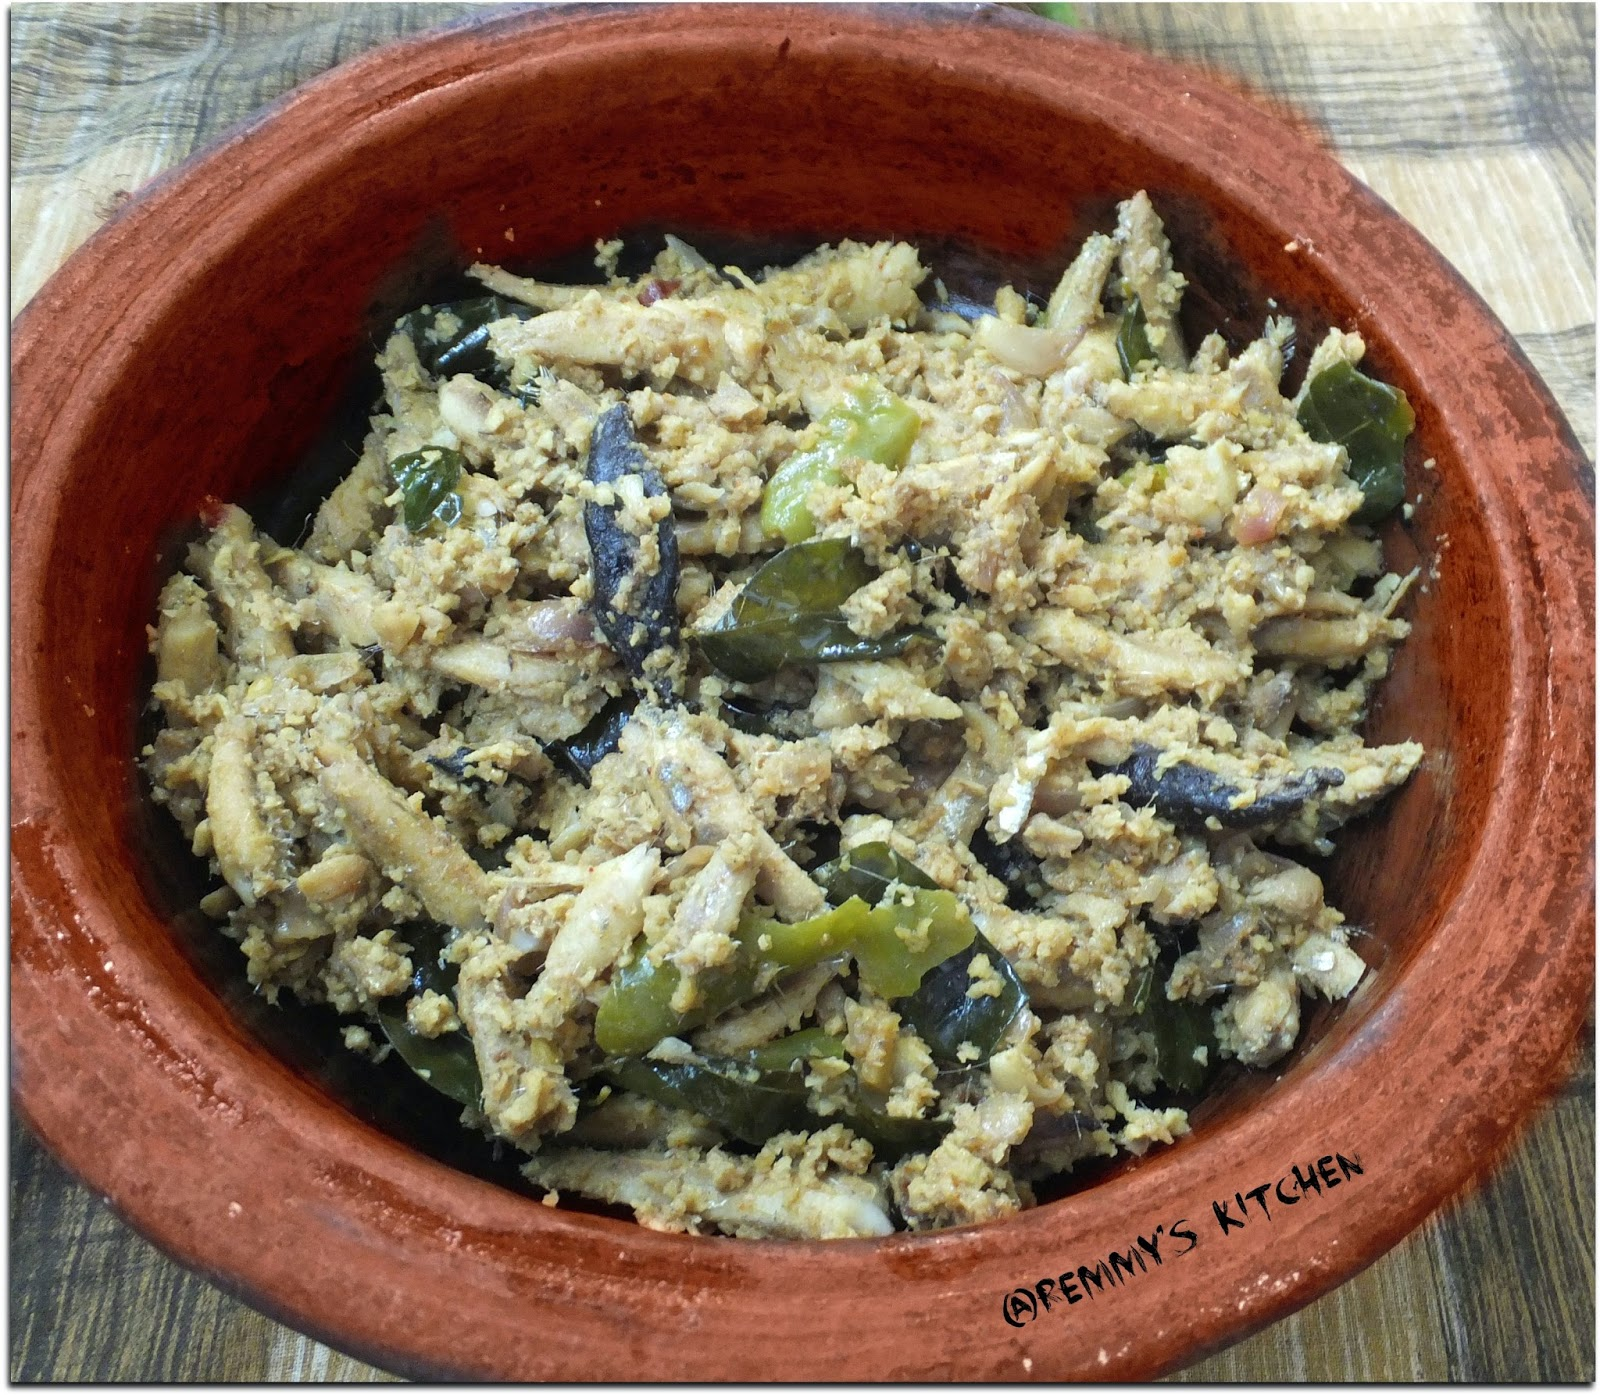 Netholi peera pattichathu/Anchovies in coconut mixture